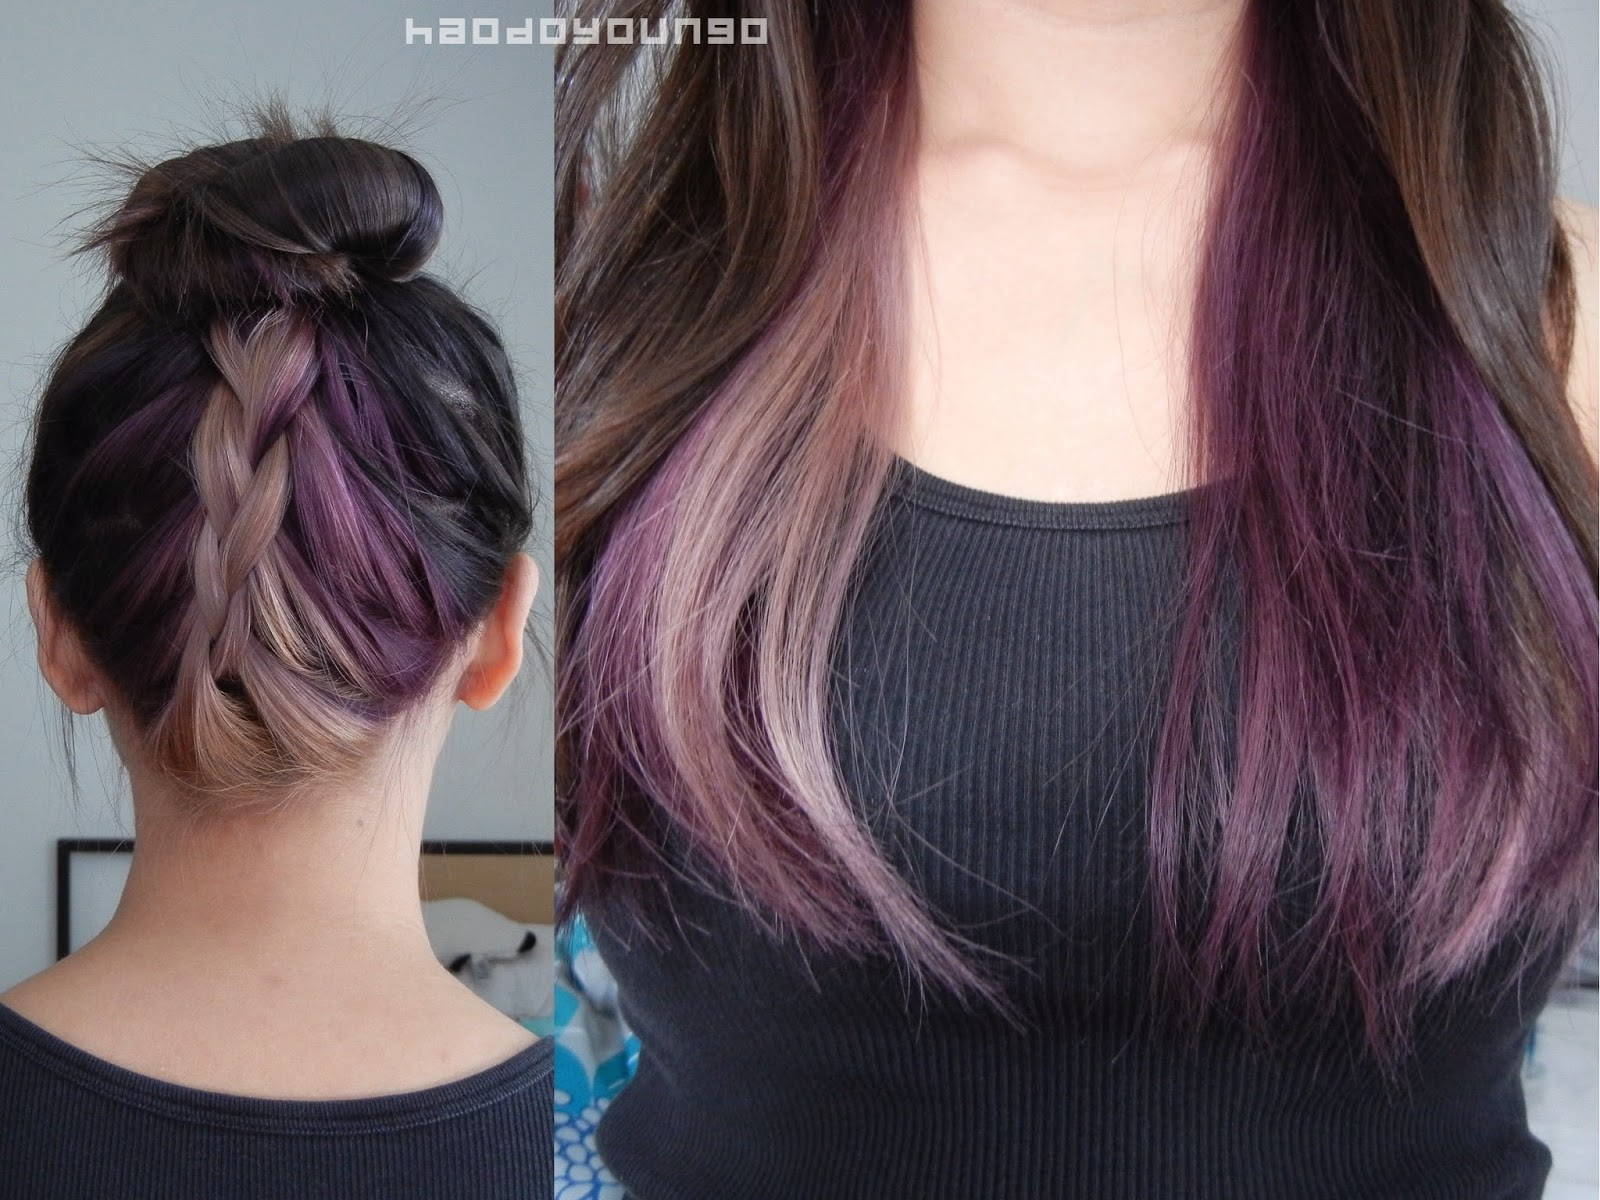 Vidal Sassoon Purple Hair Dye Review Hairstyle Inspirations 2018